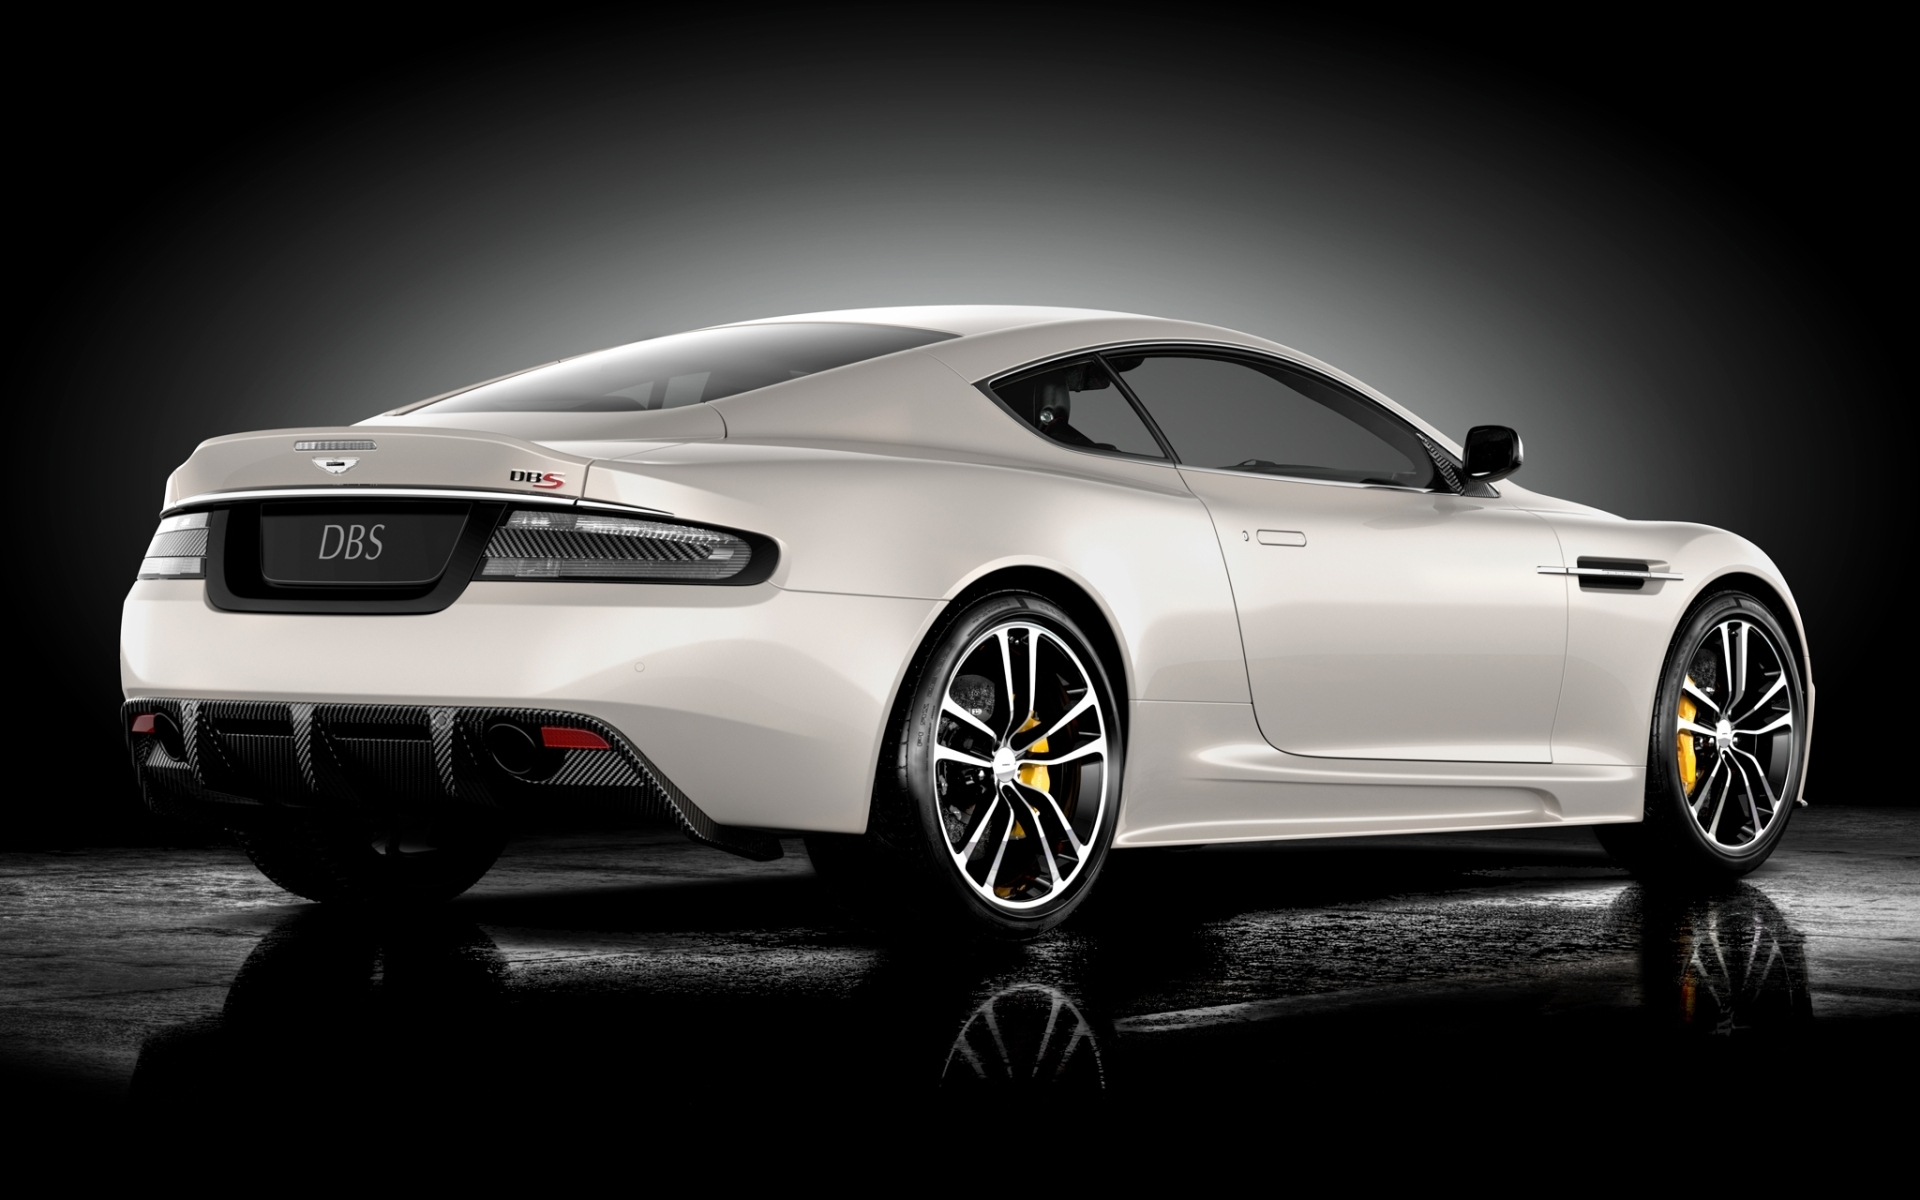 Aston Martin Dbs White Wallpaper 2